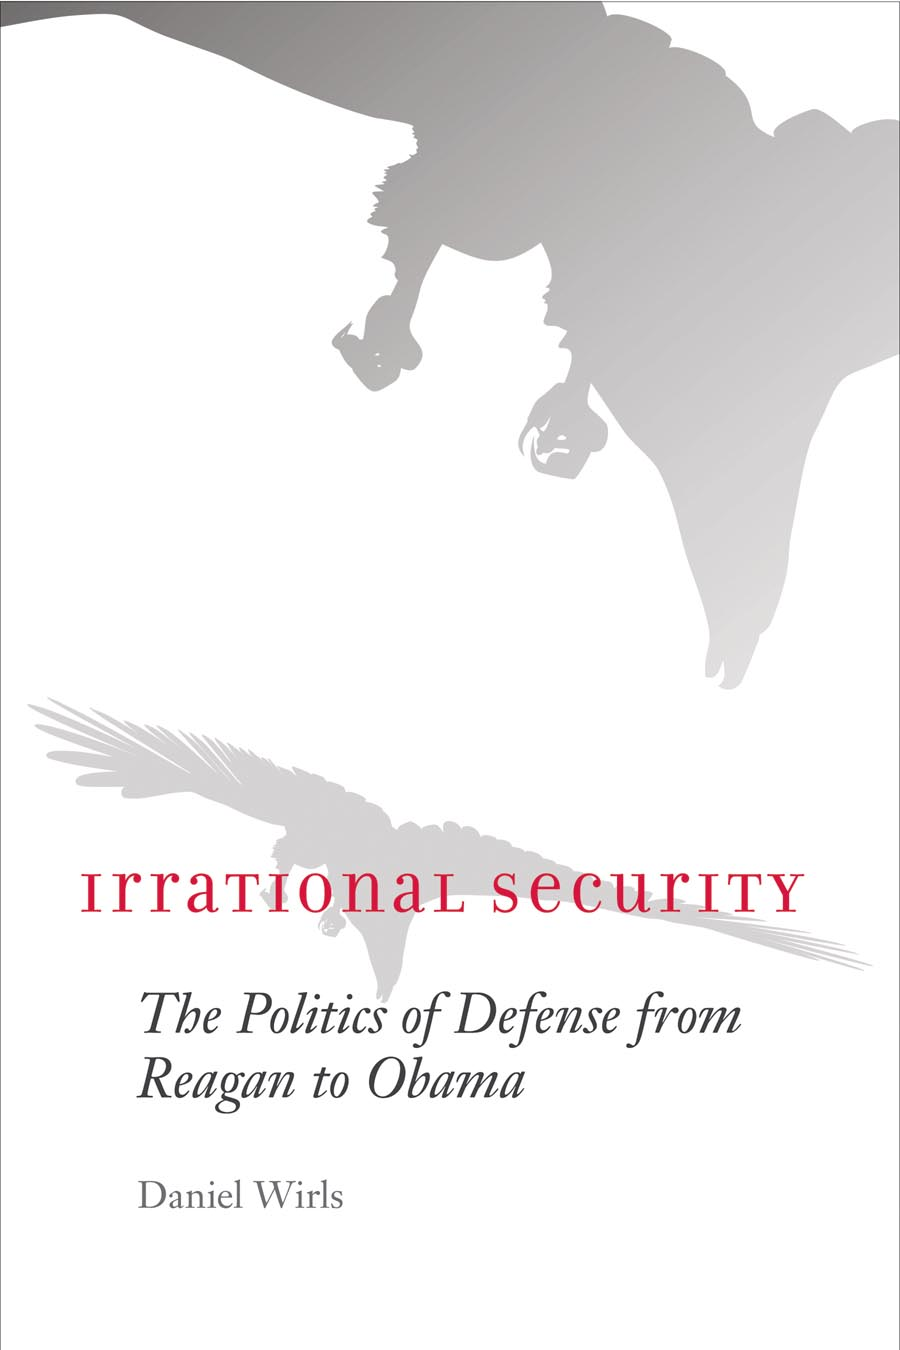 Irrational Security – The Politics of Defense from Reagan to Obama диван reagan ms1205 bovia 93a 4s reagan 01252